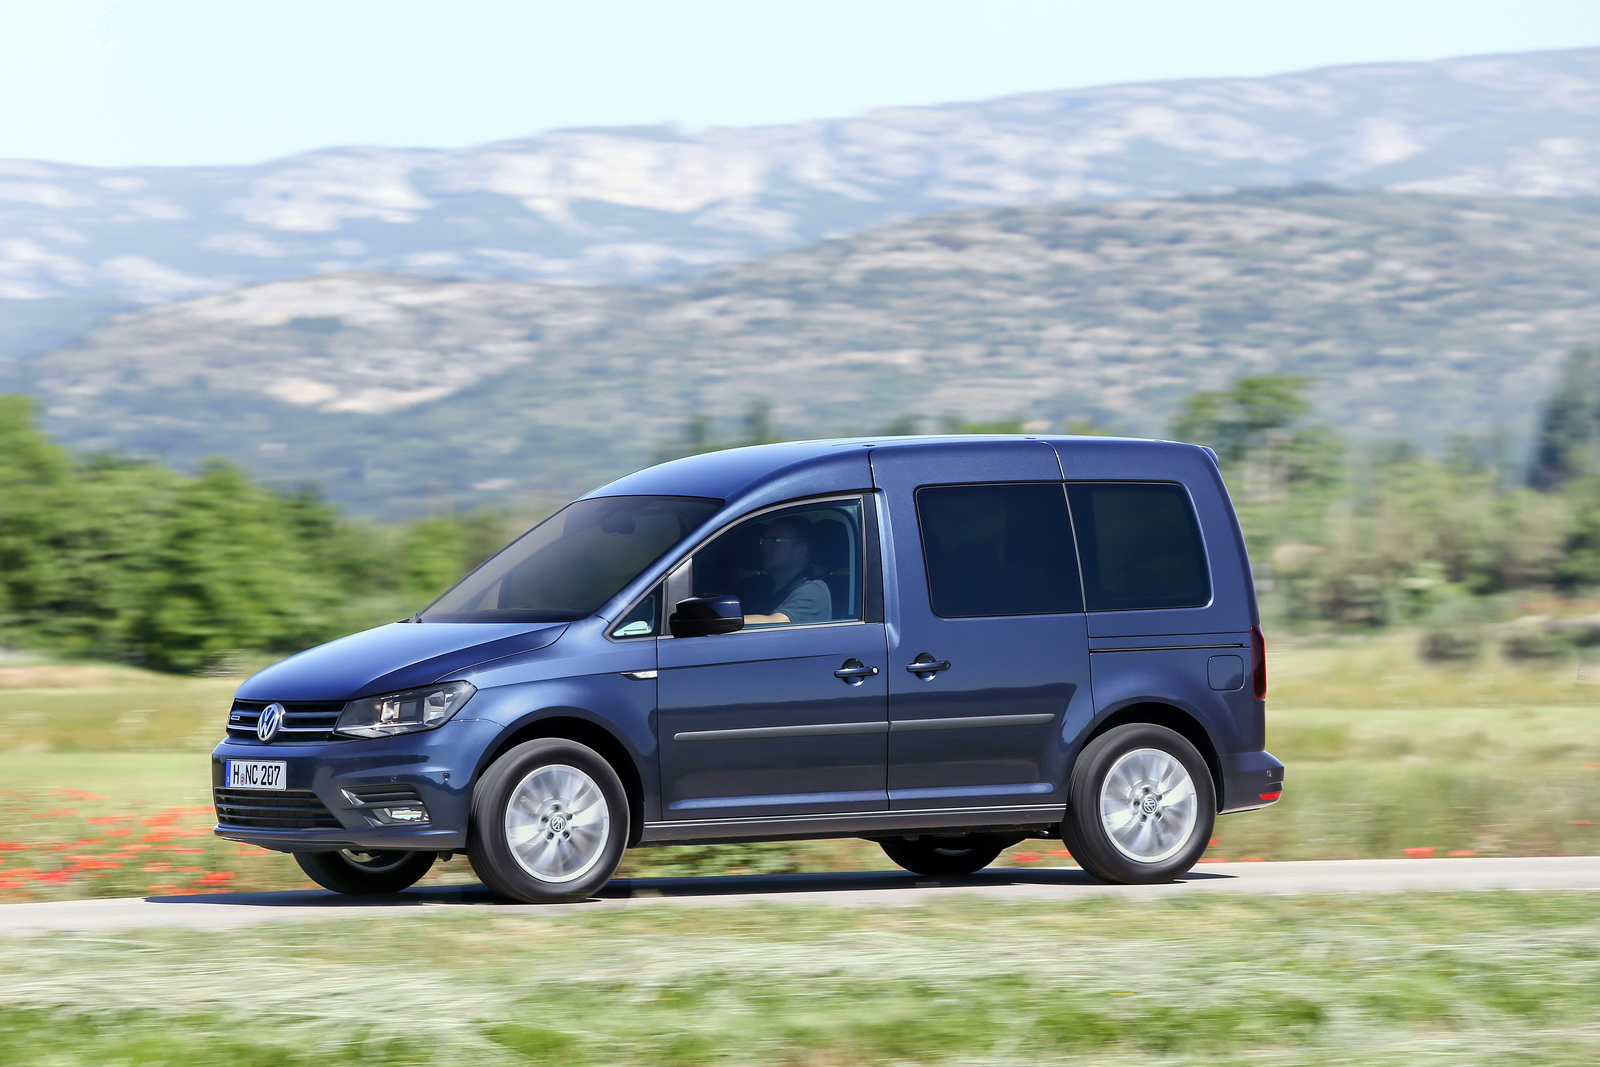 Innenausstattung Caddy New Vw Caddy Tgi Is The First Van To Combine Natural Gas